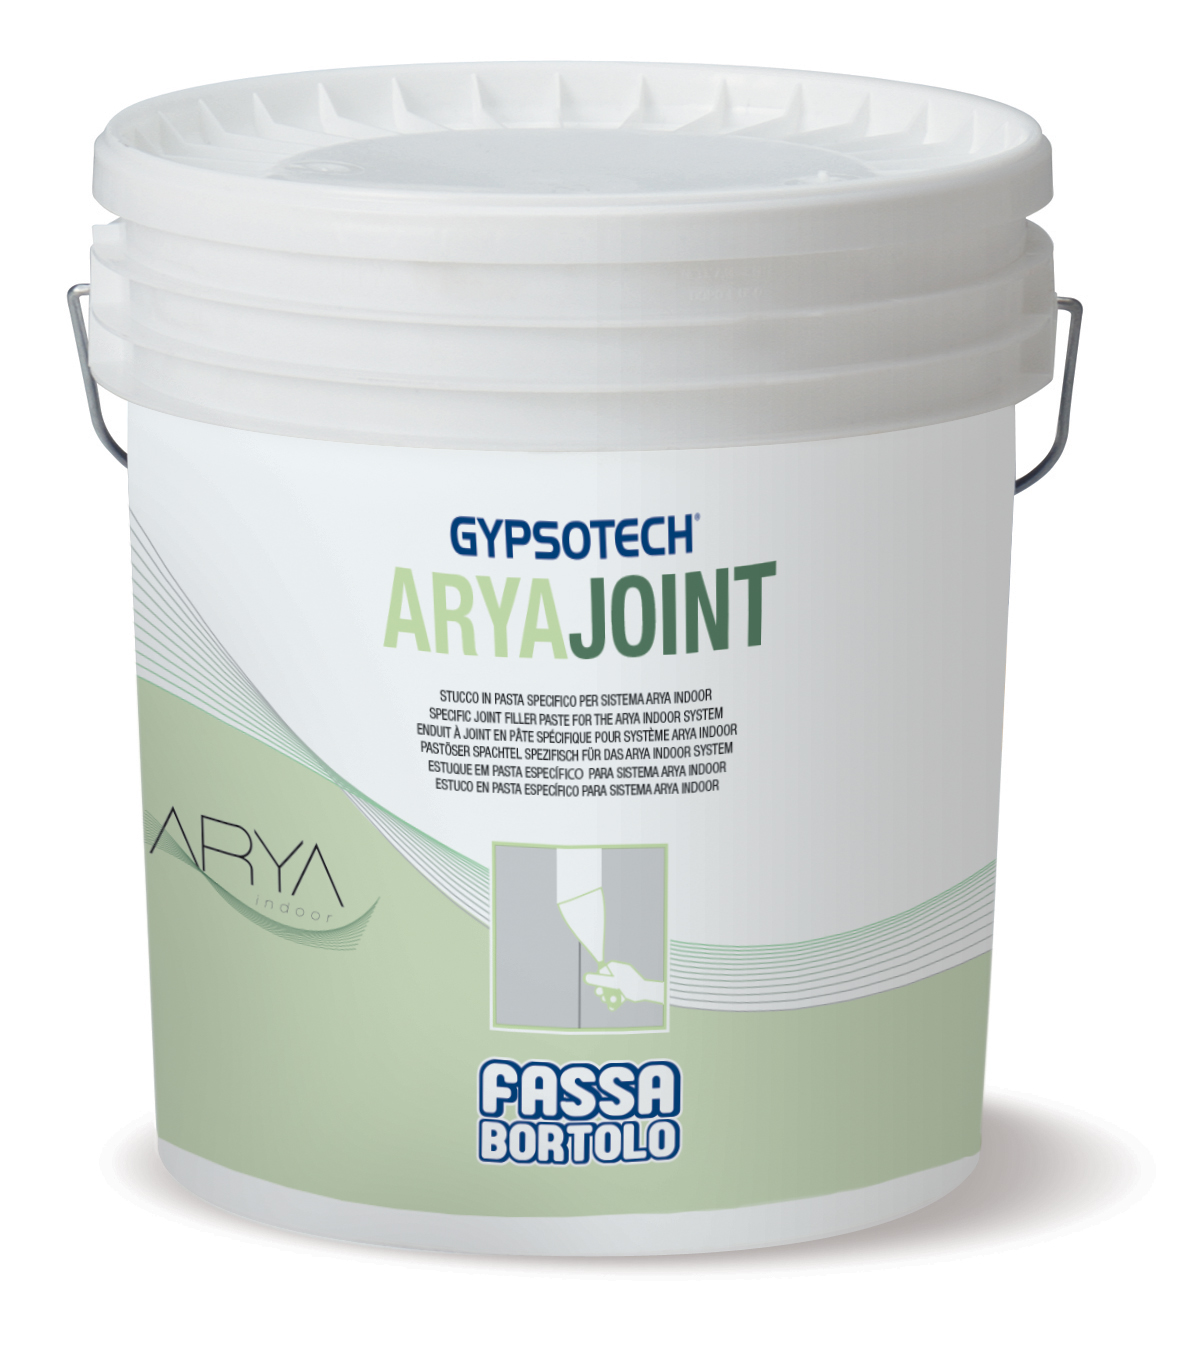 ARYAJOINT: Stucco in pasta specifico per sistema ARYAindoor